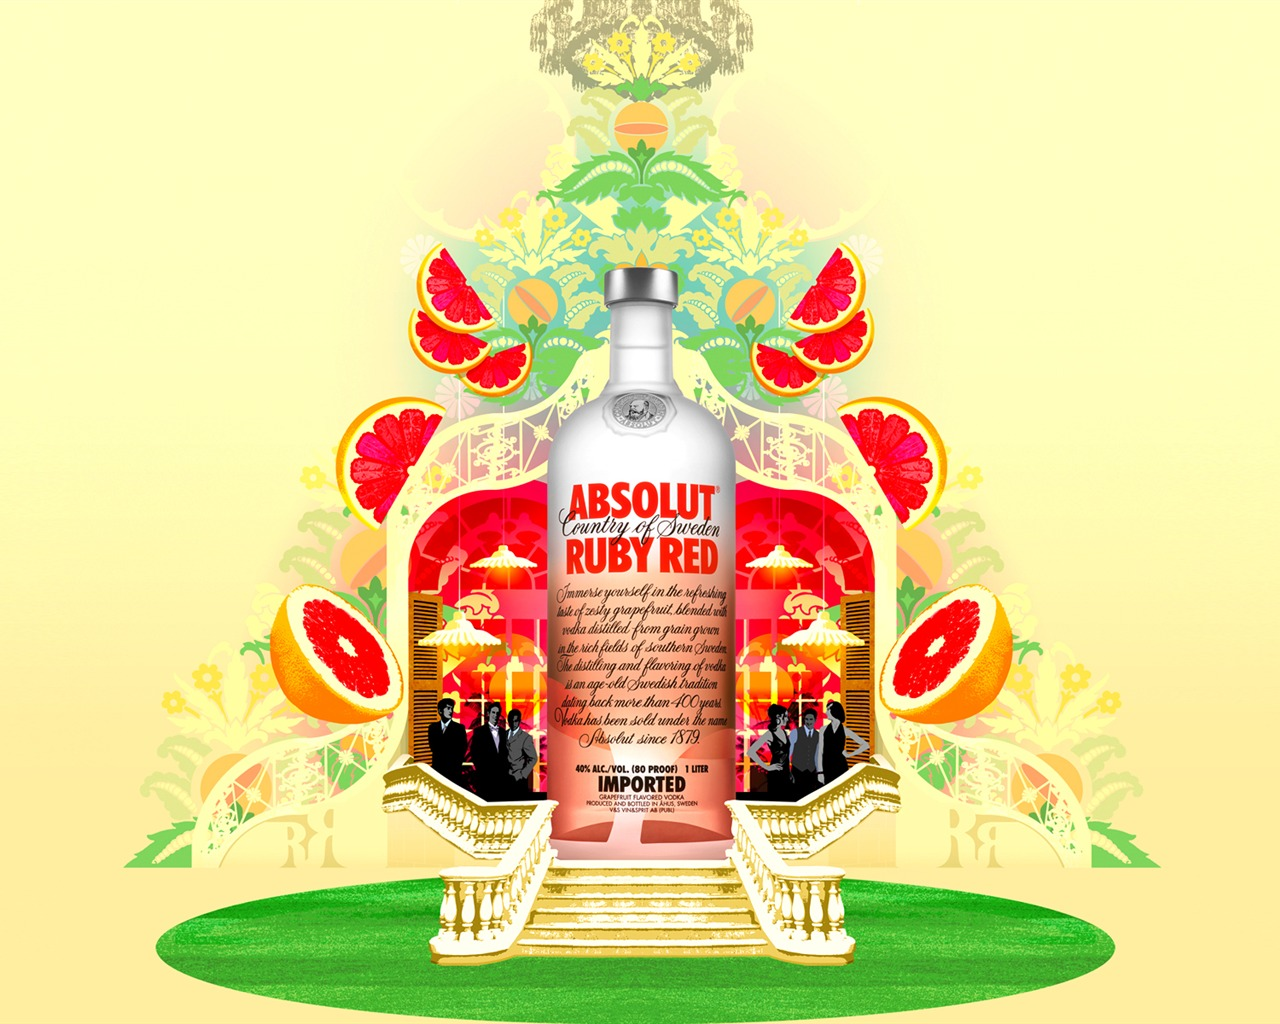 Absolut Tapety louhu Reklama #10 - 1280x1024